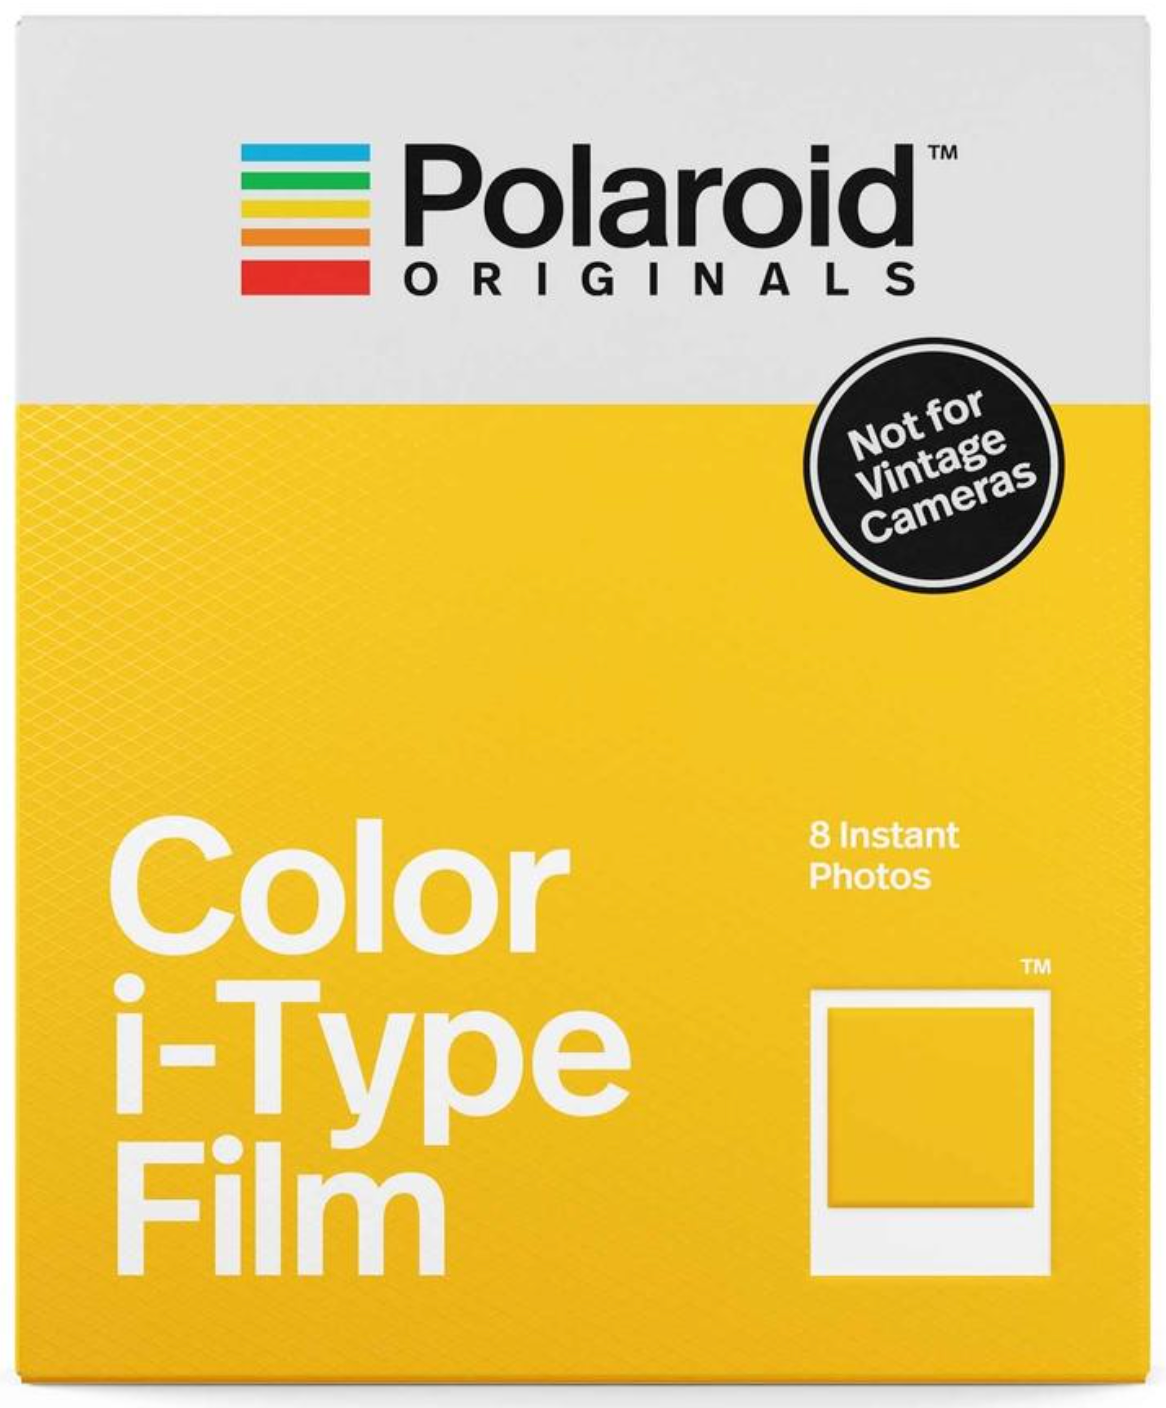 Color Film for i-Type Polaroid